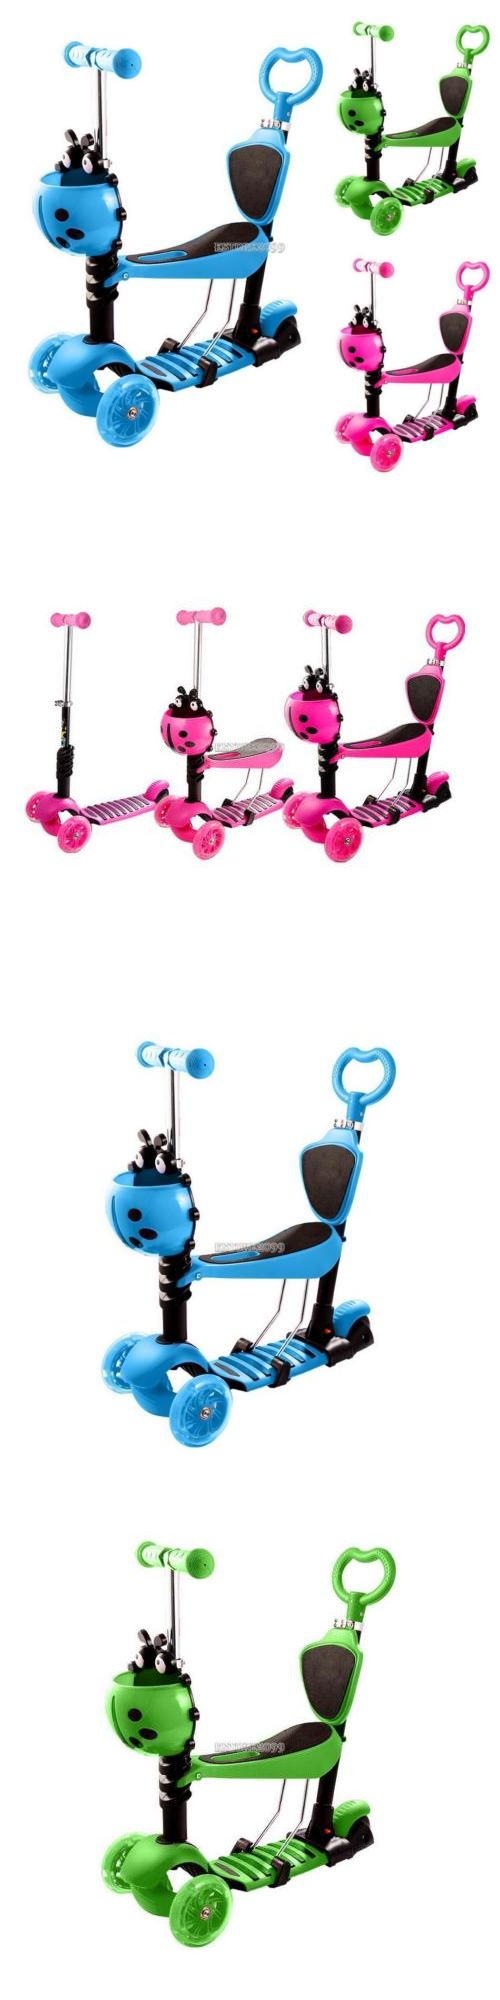 Kick Scooters 11331: Kids Scooter For Kids - Deluxe Aluminum 3 Wheel Glider With Kick N Go -> BUY IT NOW ONLY: $35.66 on eBay!